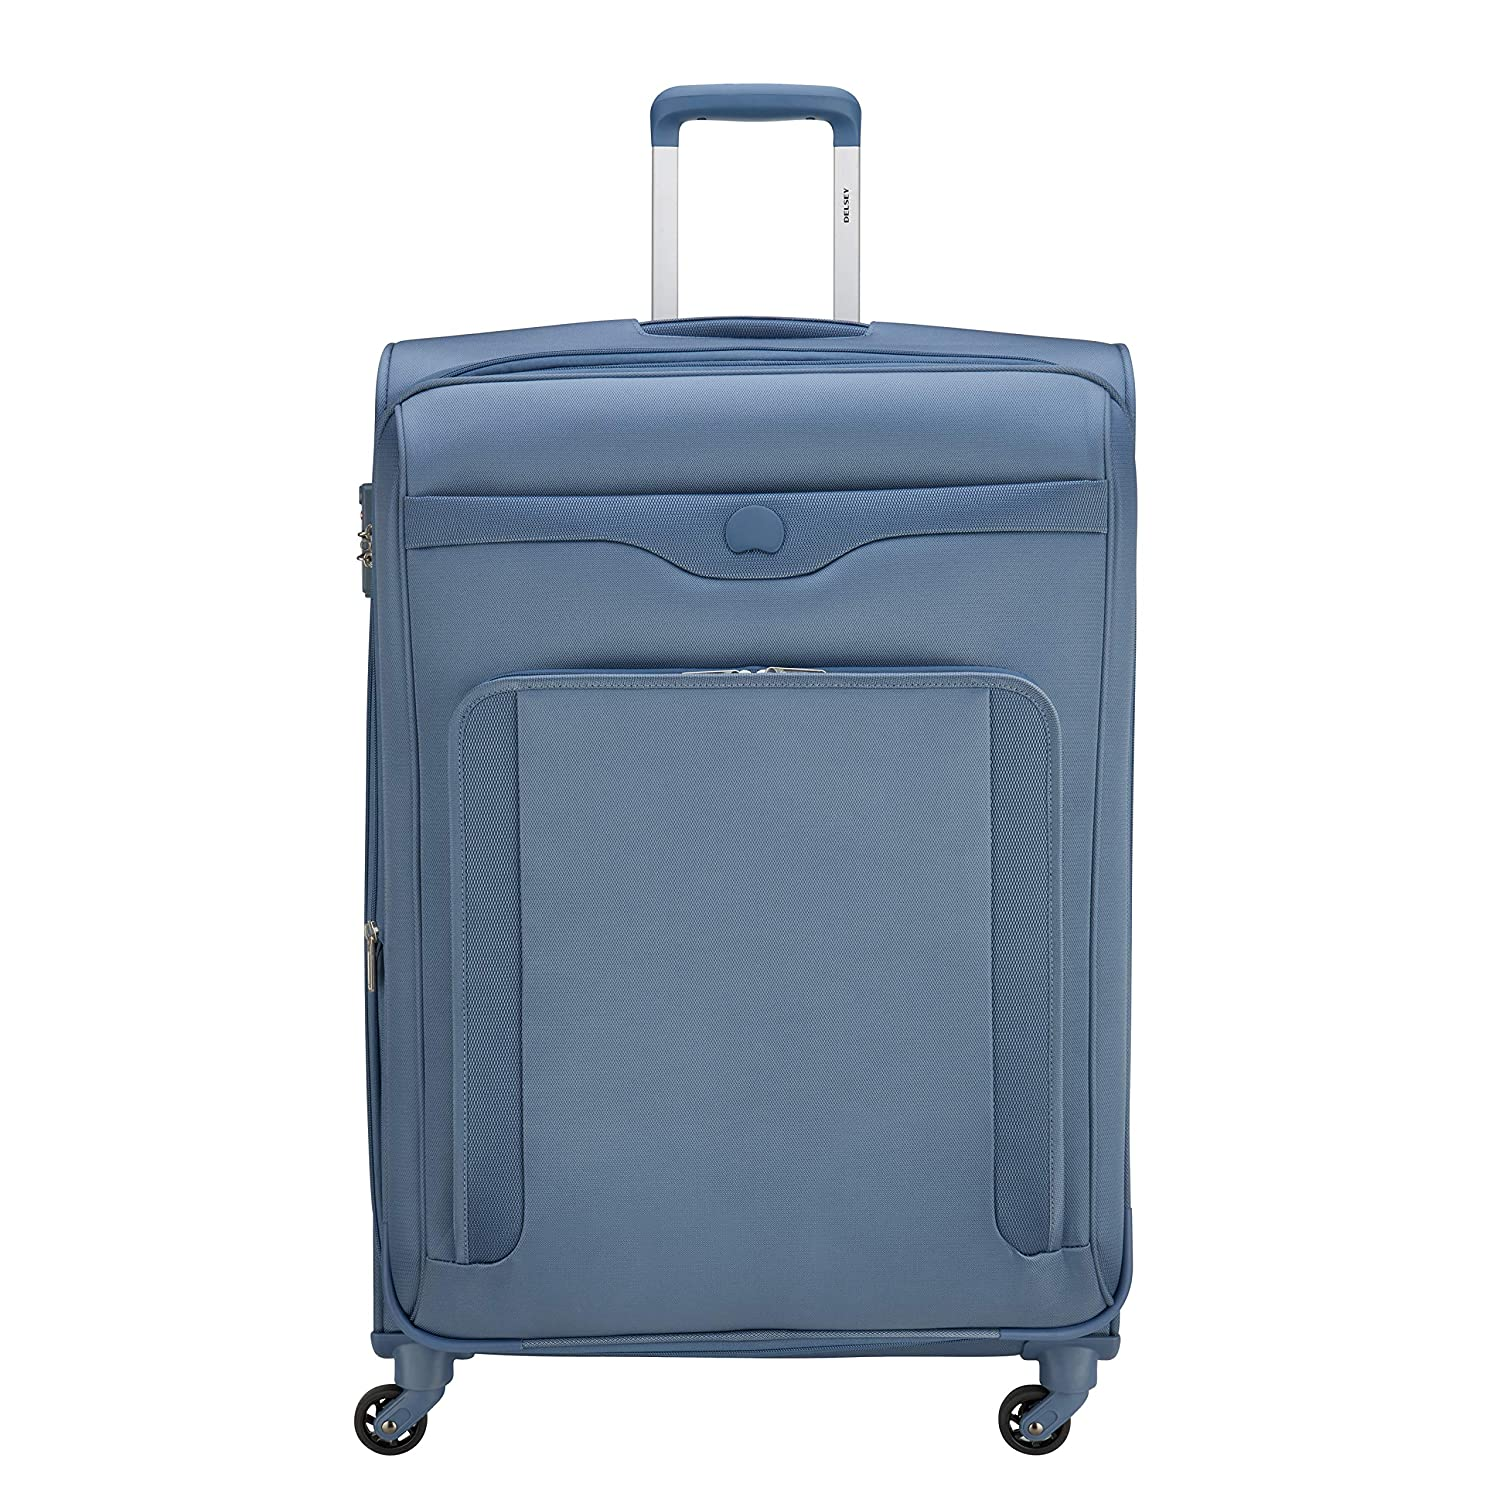 DELSEY Polyester 71 cms Steel Blue Softsided Check-in Luggage (BAIKAL)